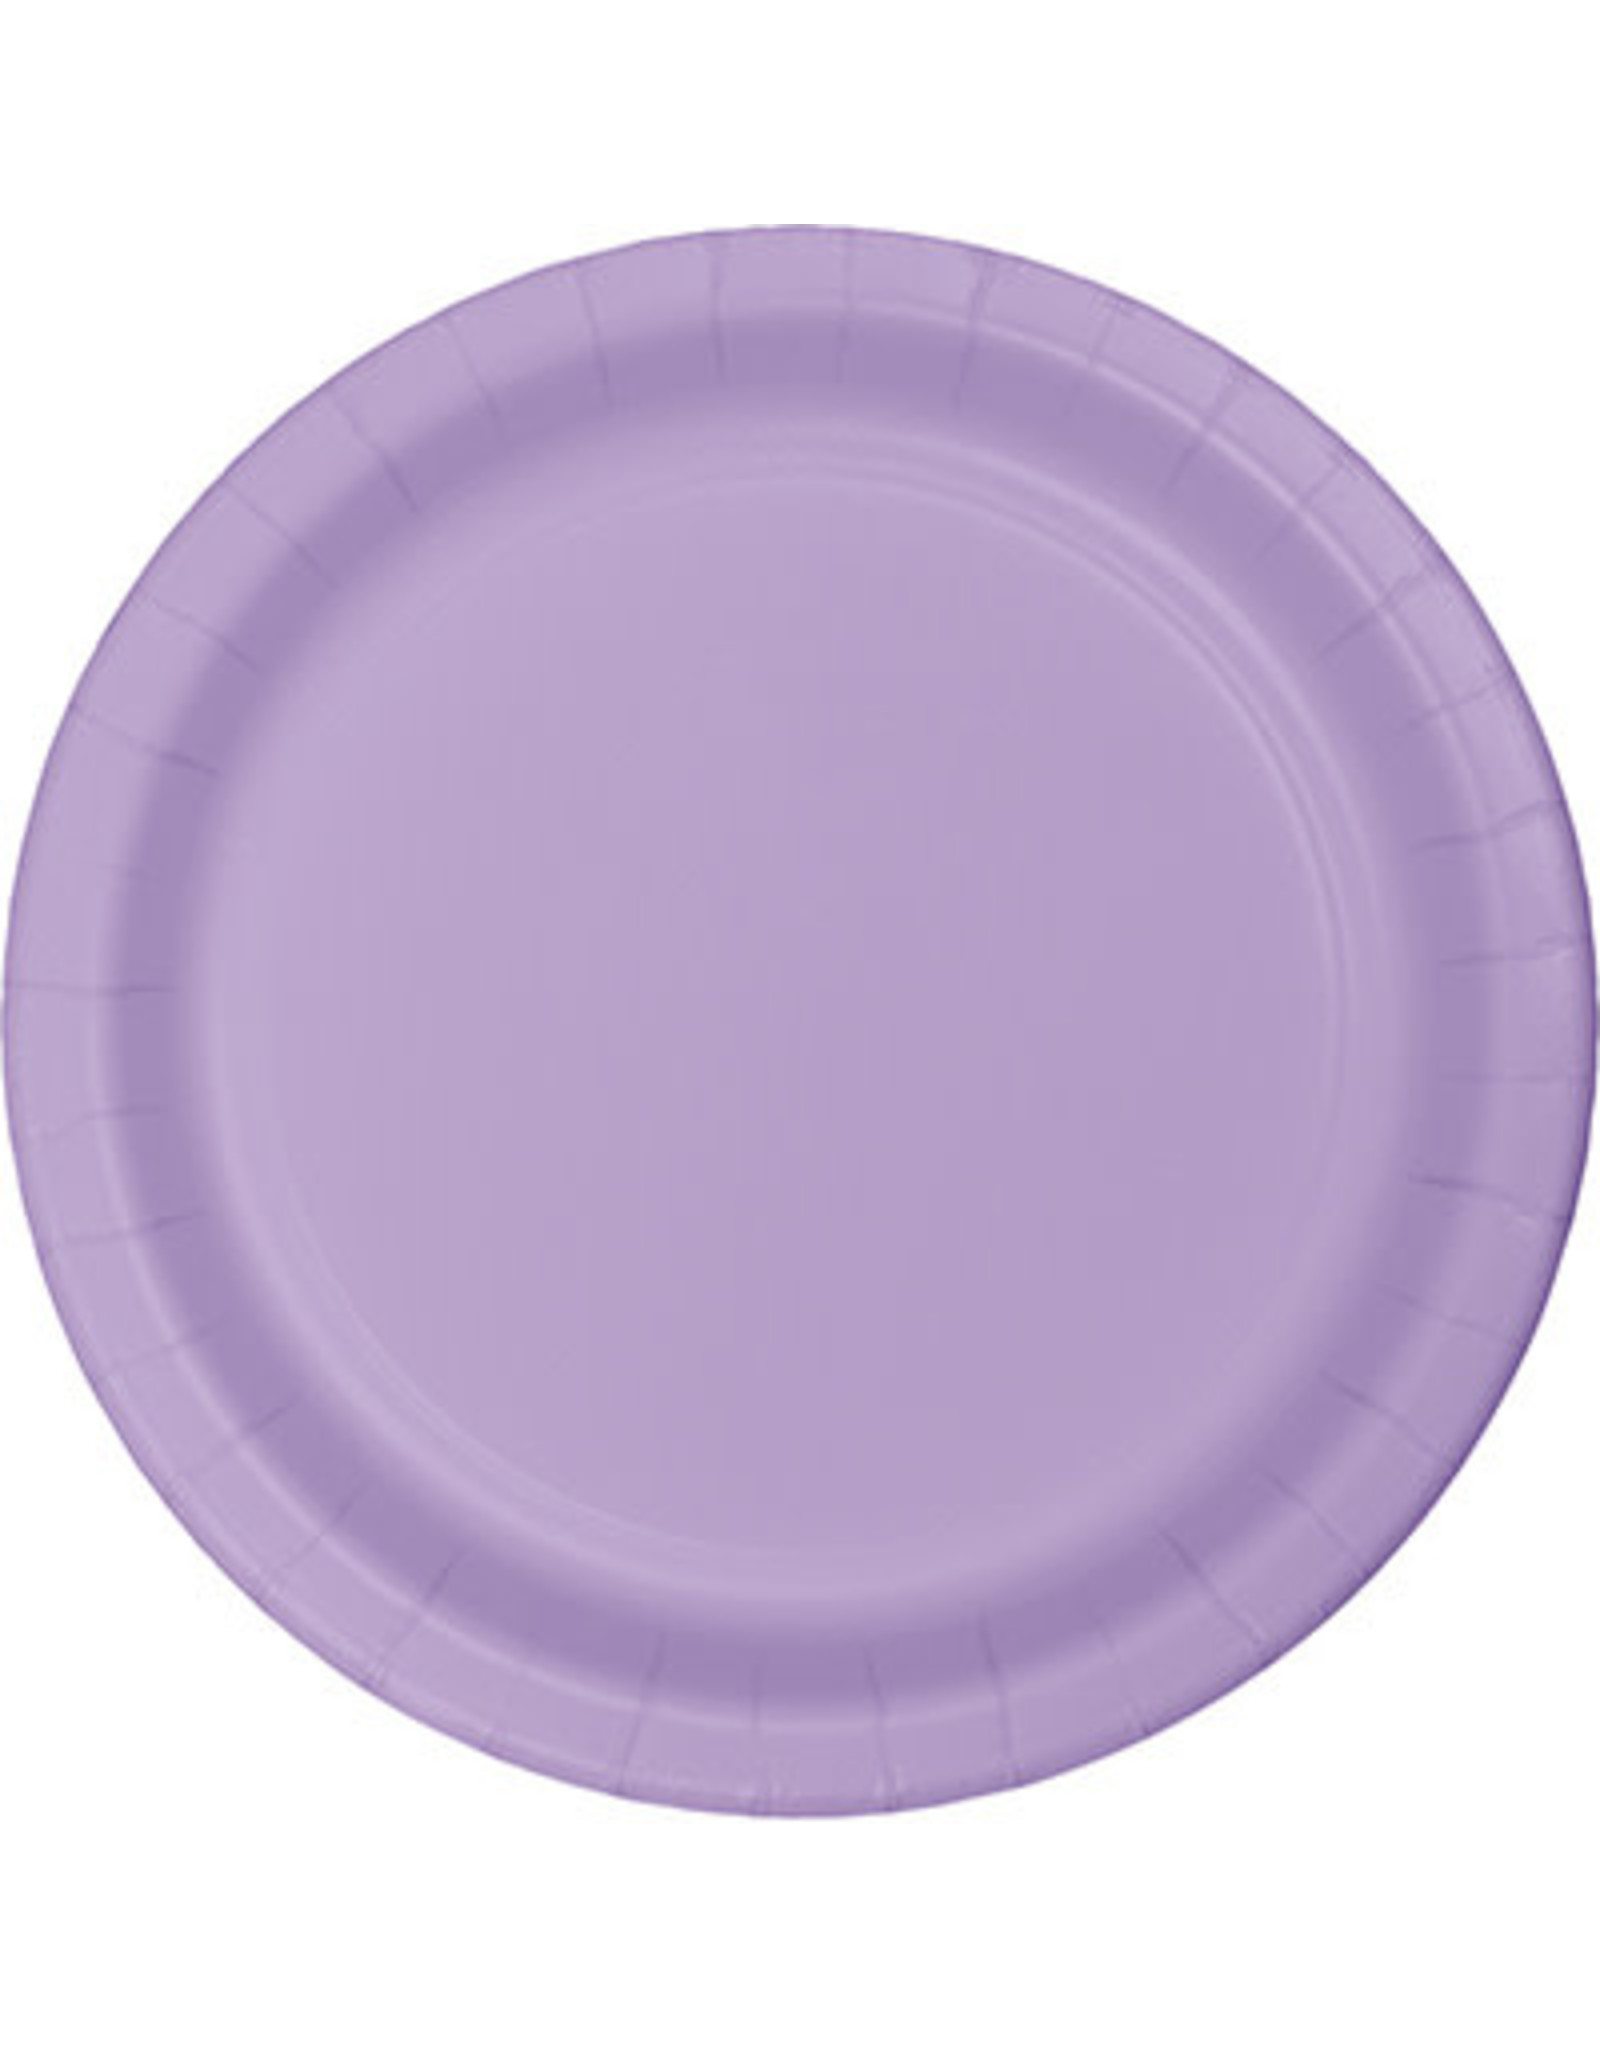 "Touch of Color 10"" Luscious Lavender Paper Banquet Plate"